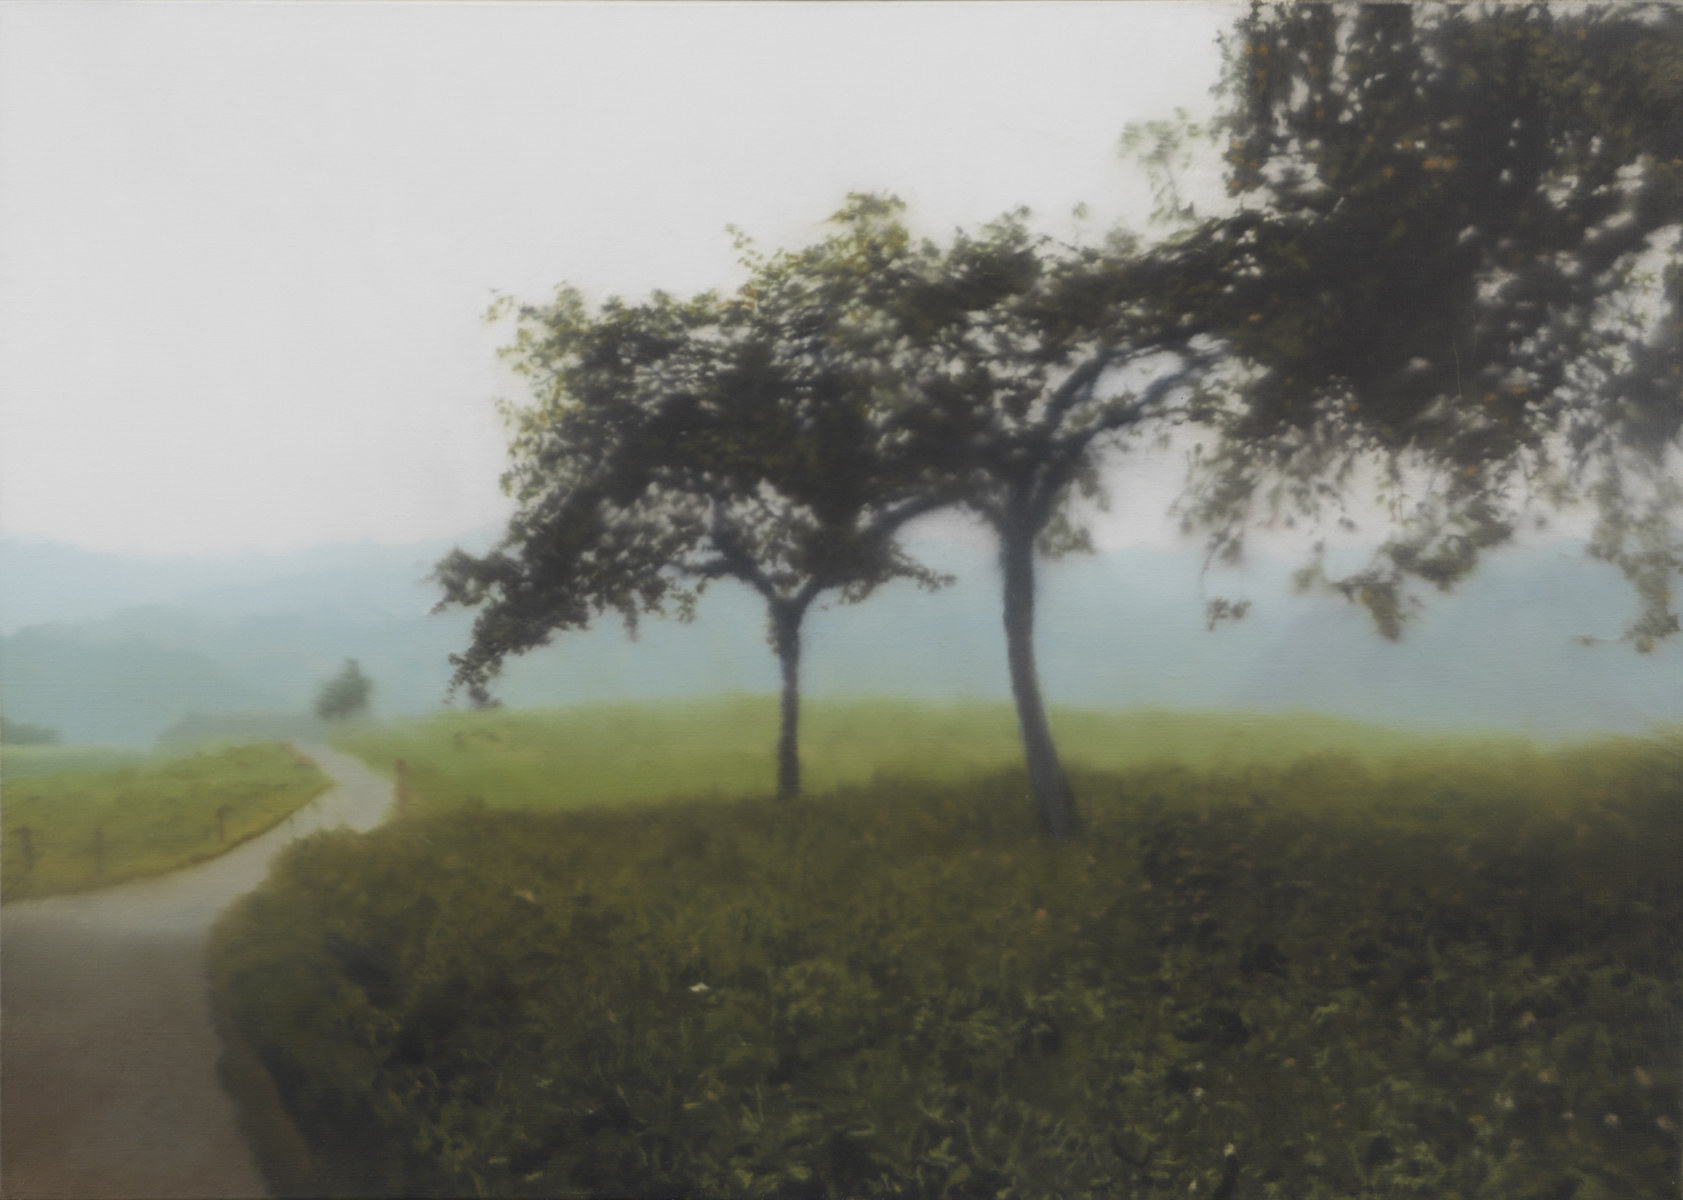 A painting of a grassy hilltop with trees and a road, hazy mountains in the distance, and a grey sky.